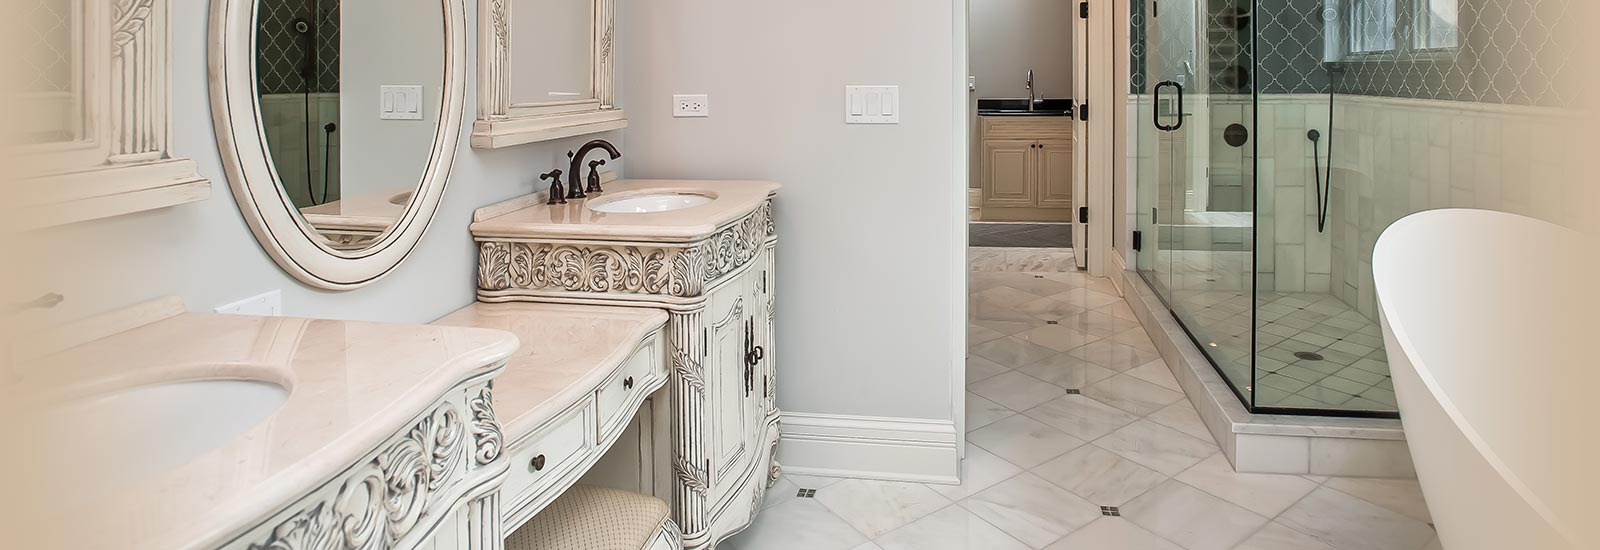 Custom Home Builders - NorthShore Development Group